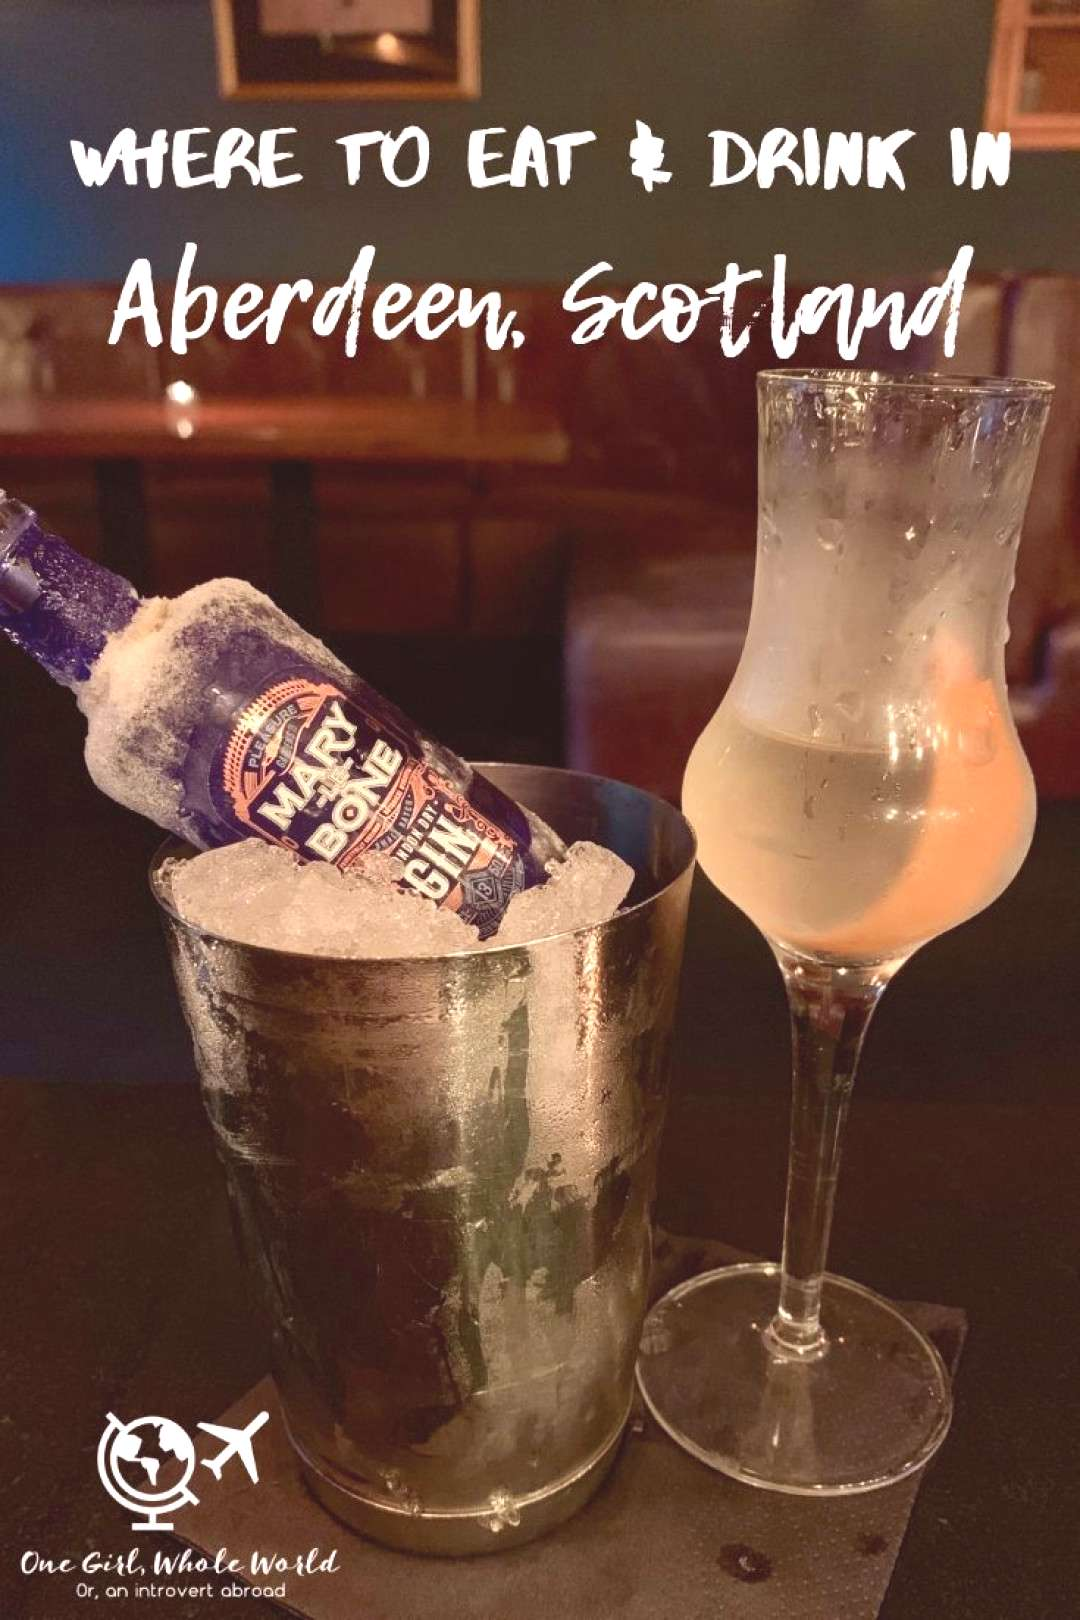 Aberdeen Restaurants amp Bars You Have To Try | One Girl, Whole World Where to Eat amp Drink in Aberdee